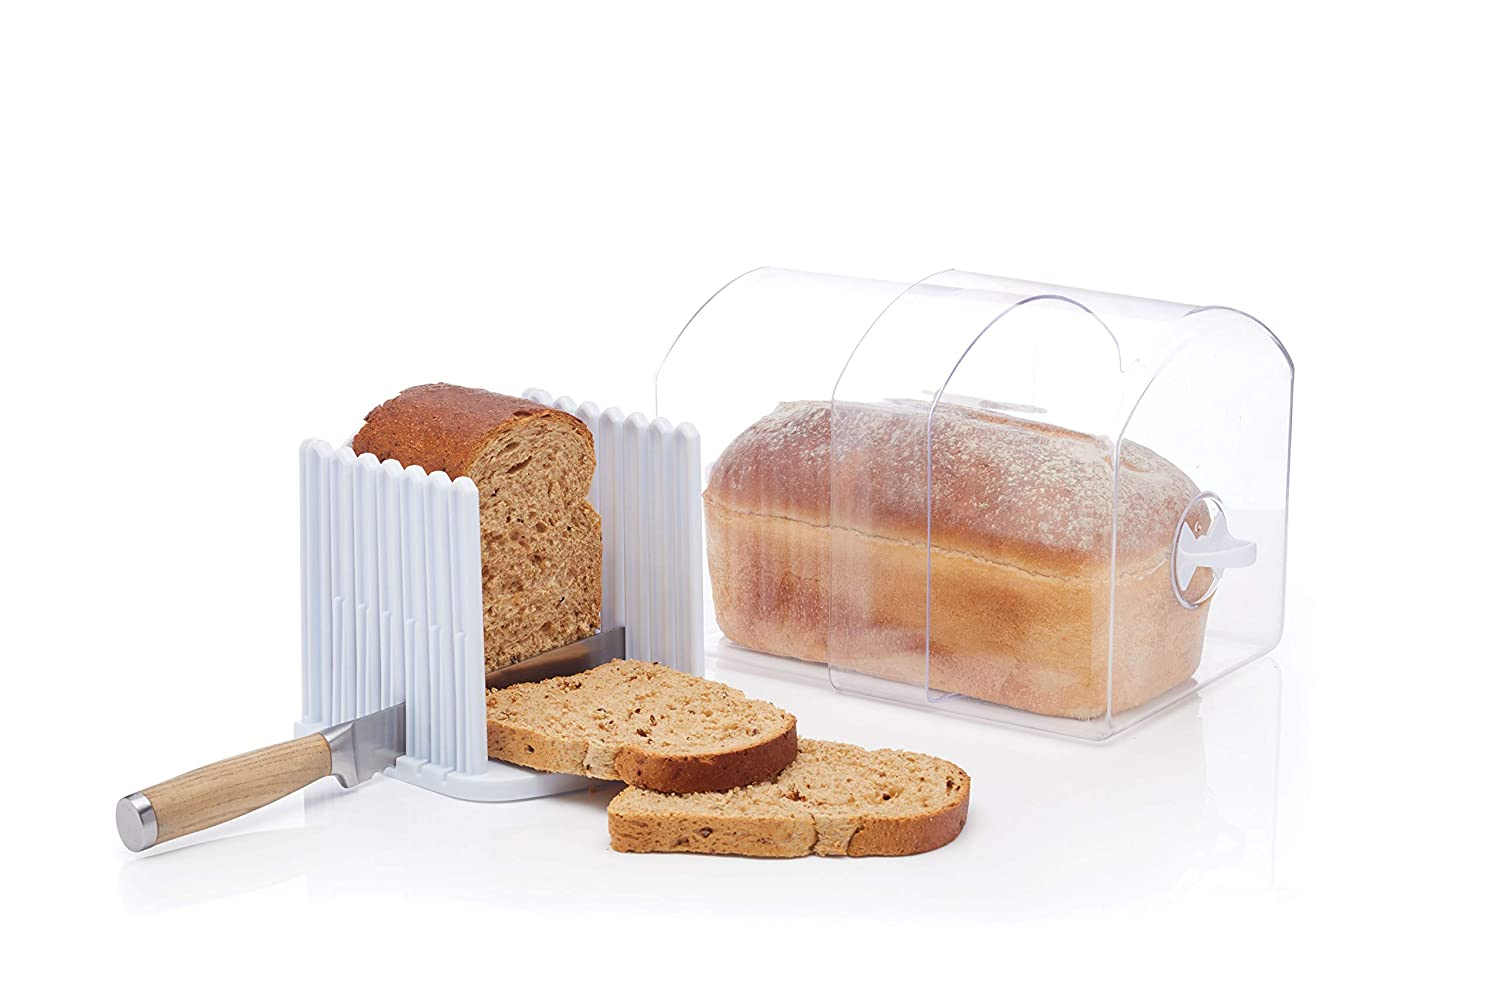 Kitchen Craft Stay Fresh Expanding Bread Keeper  Bread Bin with Bread Slicer Guide Plastic  Large